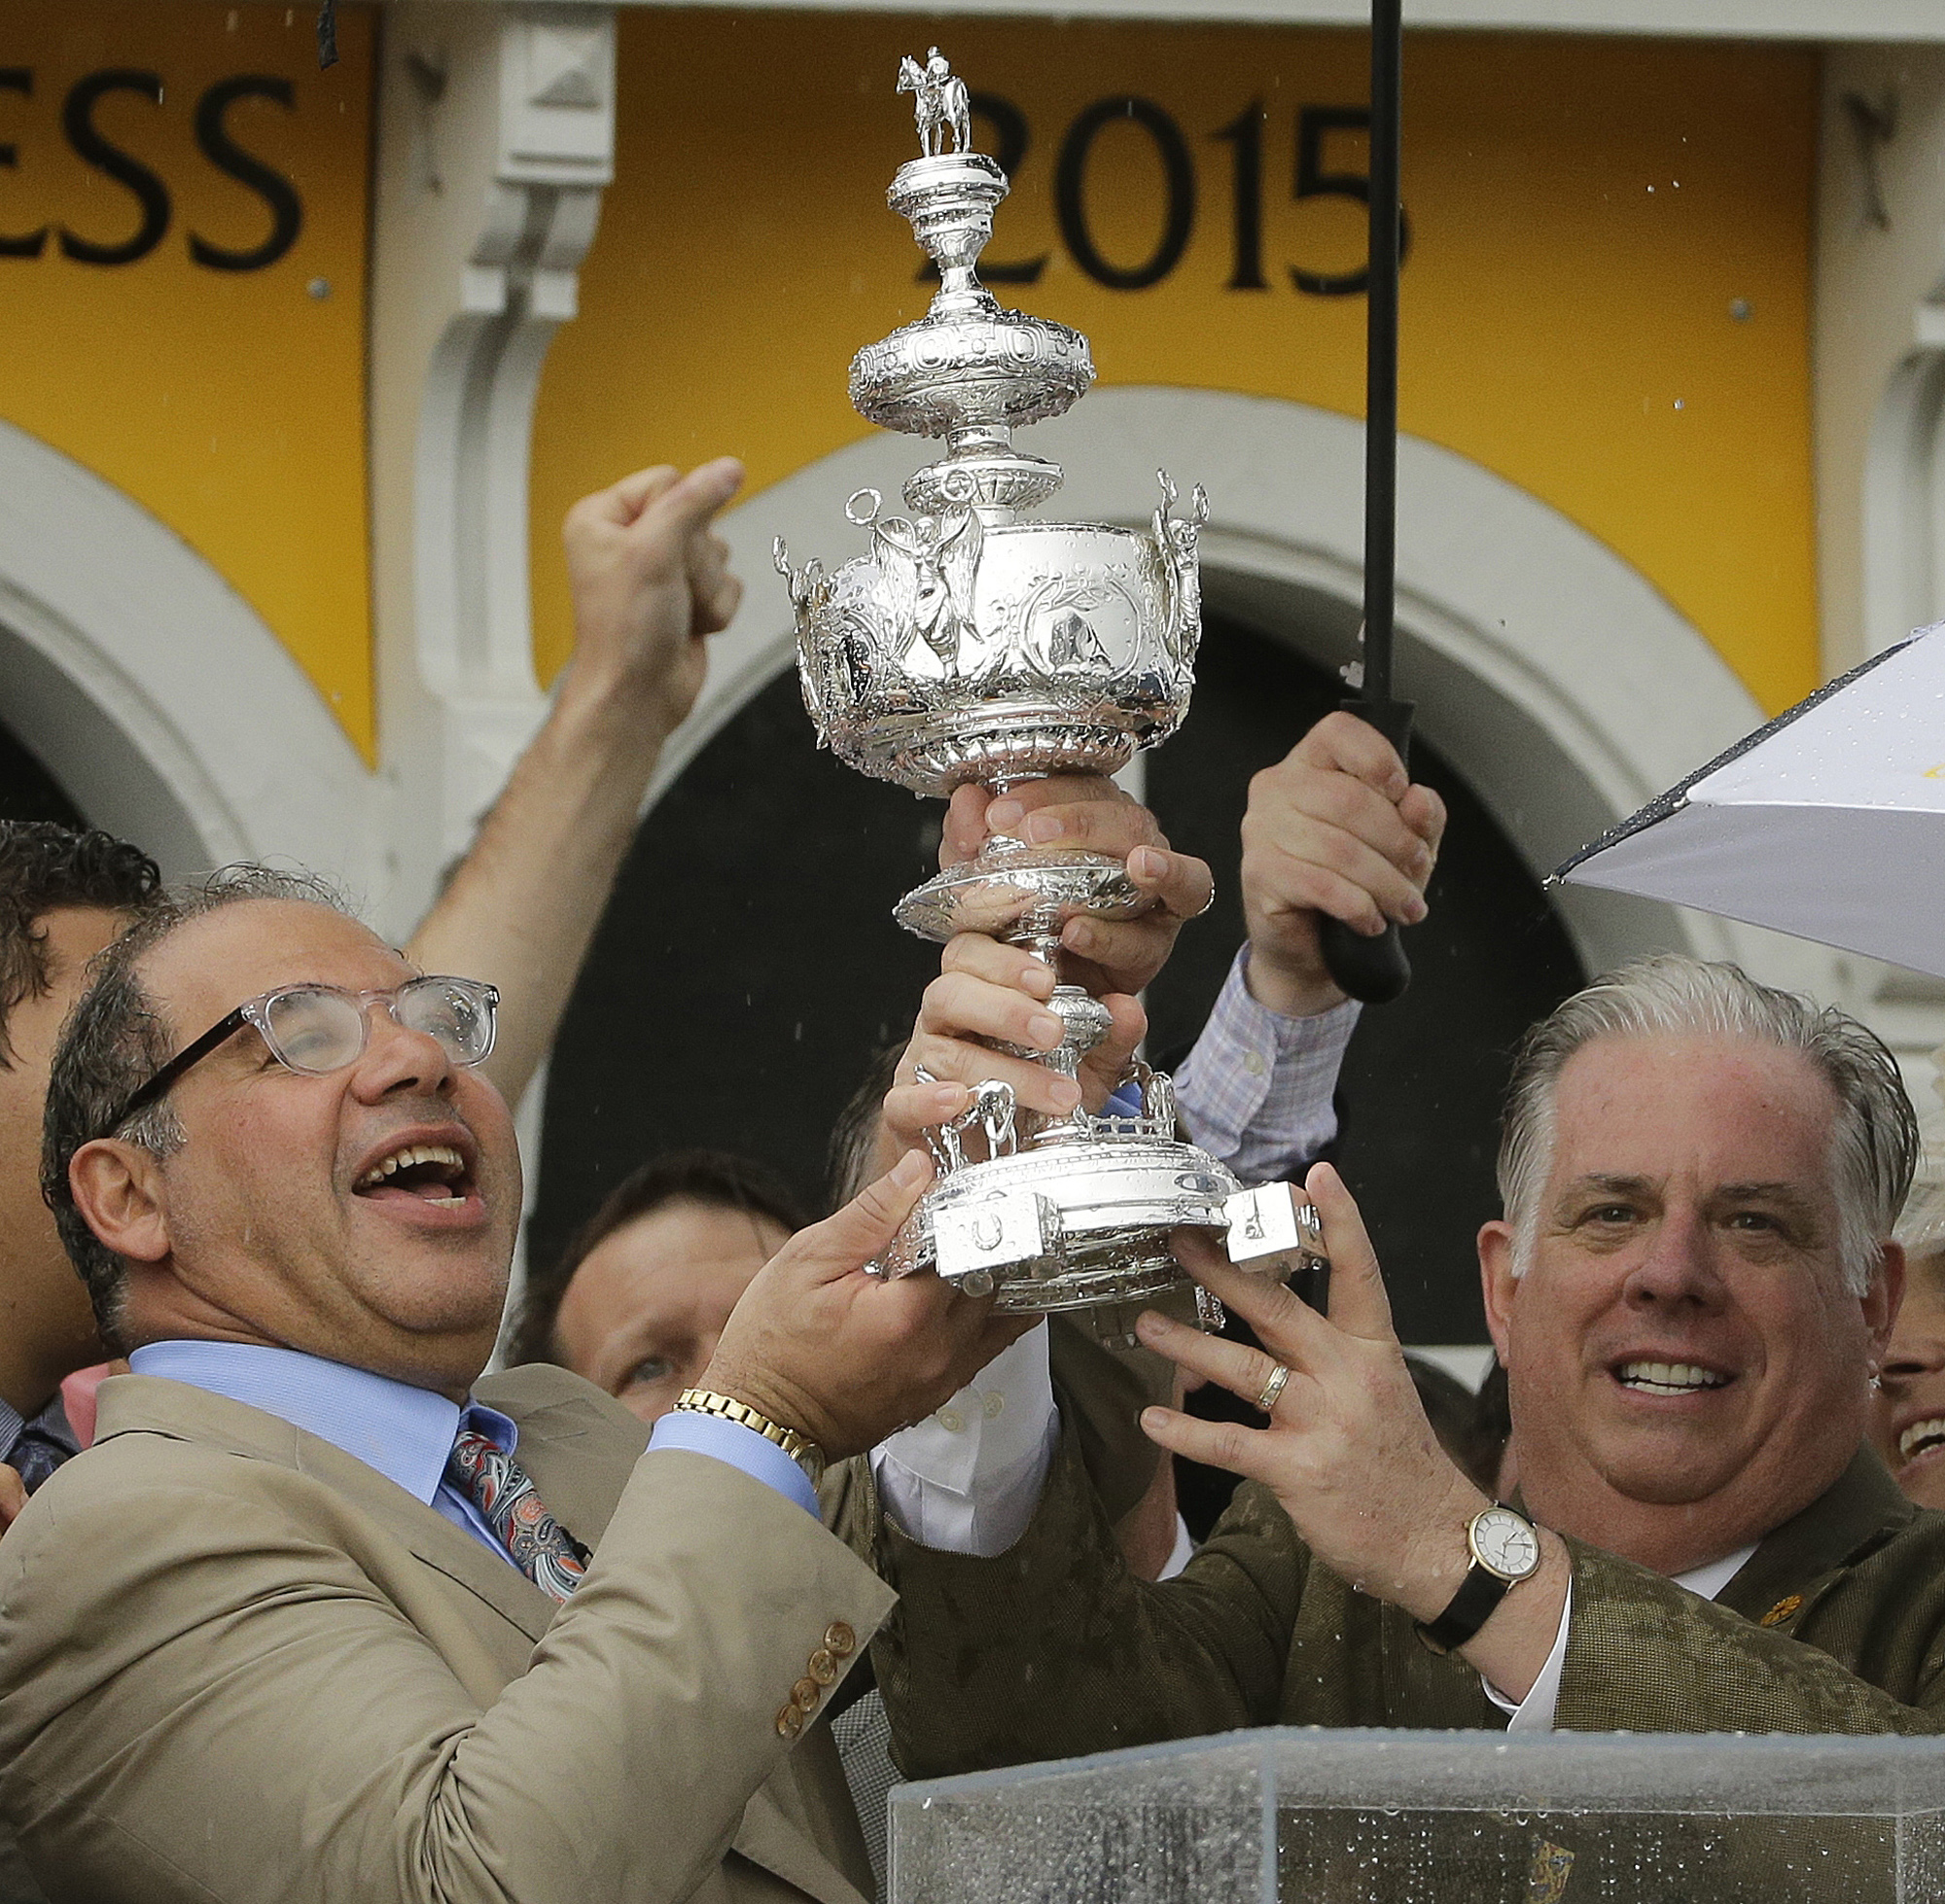 FILE - In this May 16, 2015 file photo, American Pharoah owner Ahmed Zayat, left, and Maryland Gov. Larry Hogan hold the Woodlawn Vase after American Pharoah with Victor Espinoza aboard won the 140th Preakness Stakes horse race at Pimlico Race Course,  in